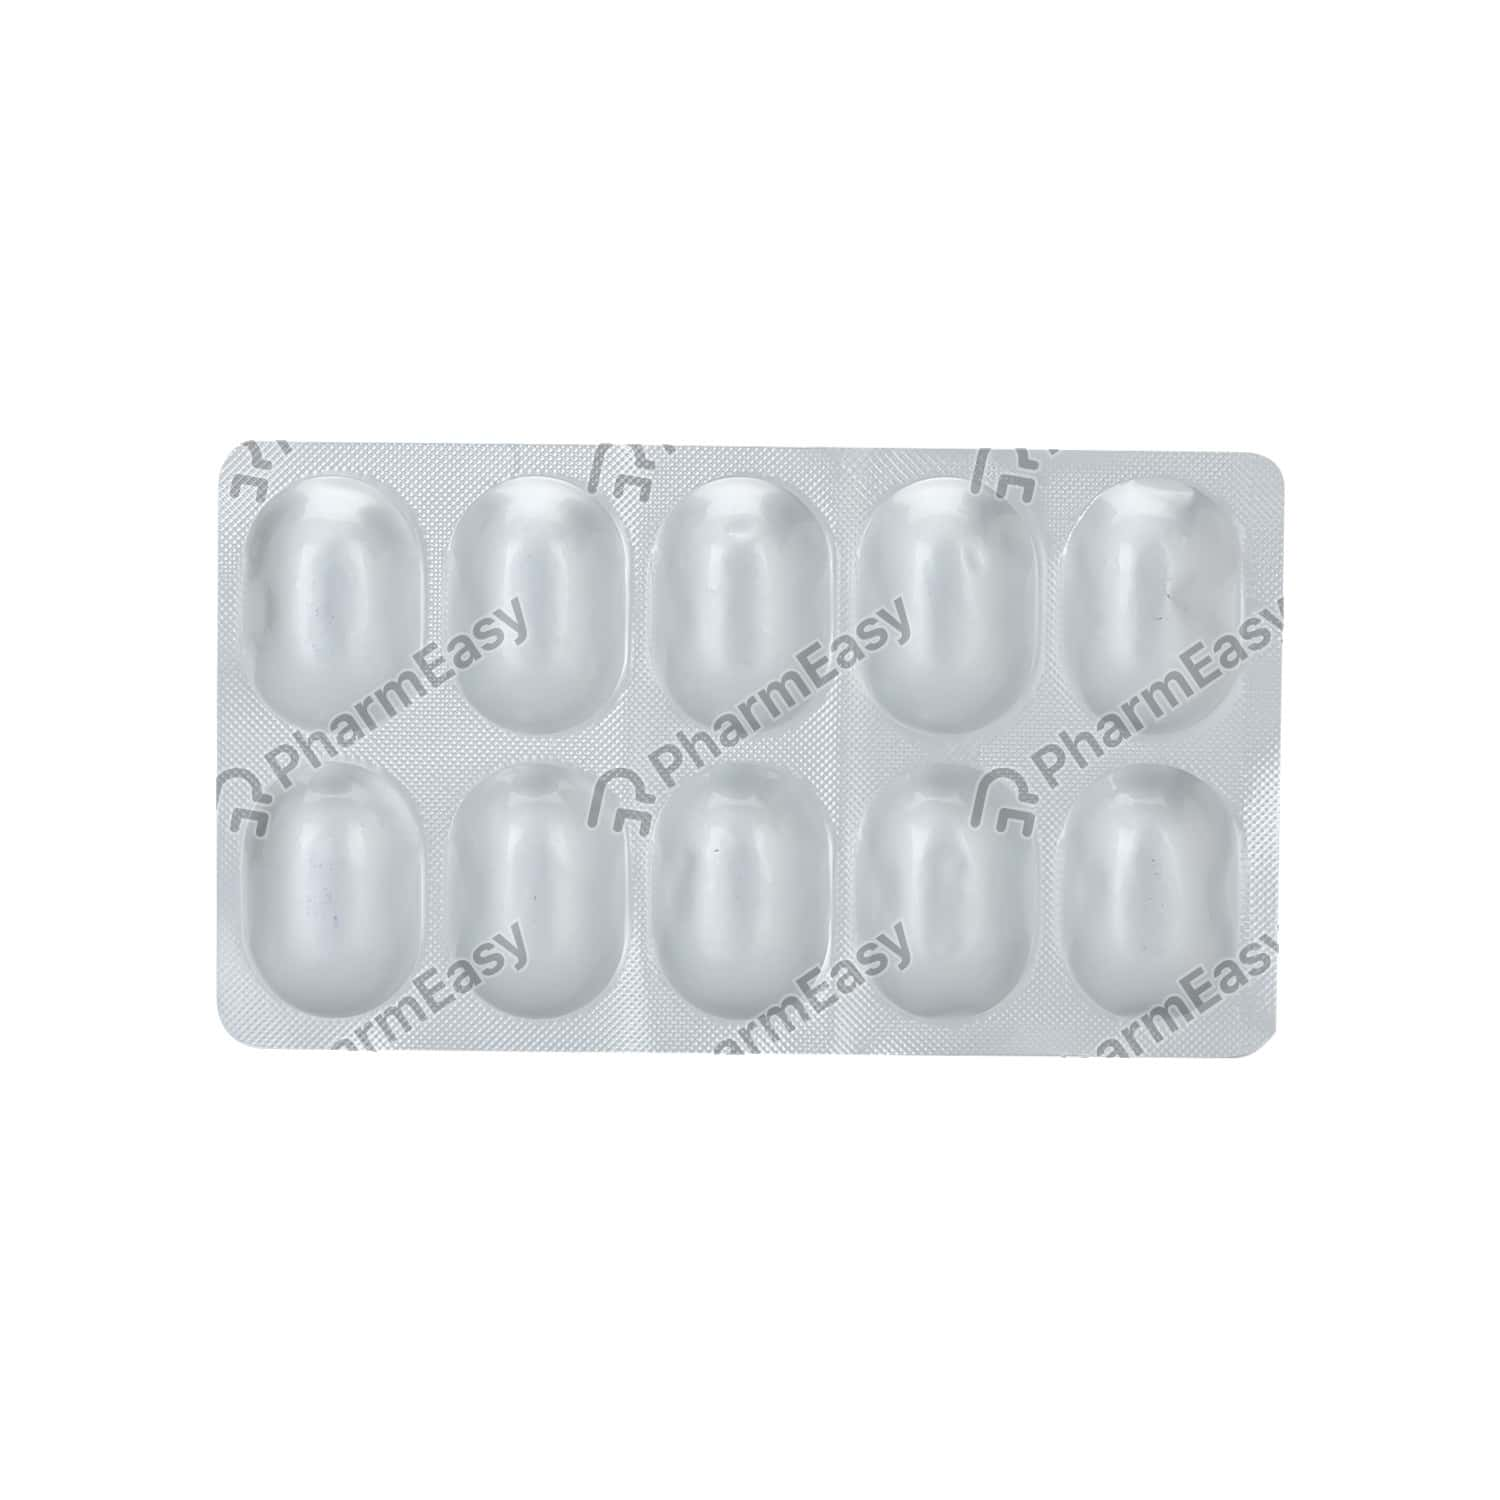 Dayo Od 500mg Tablet